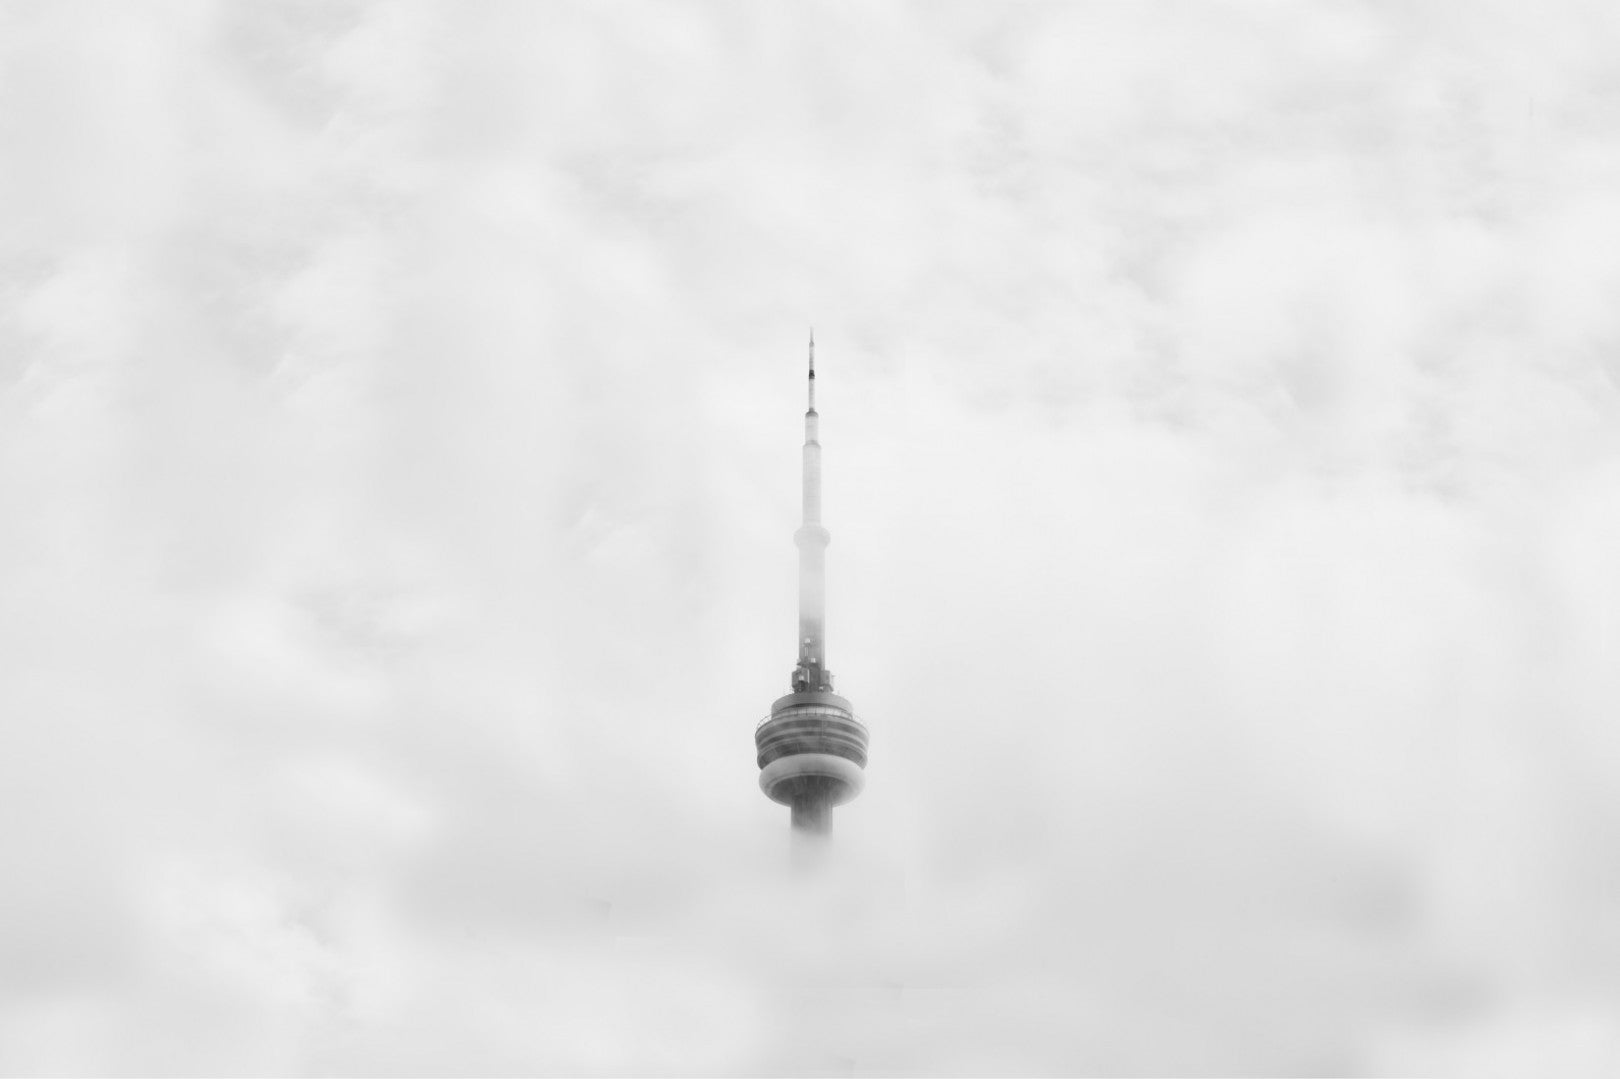 Cool tall tower and spire appear to be floating in the clouds in this black and white photo.